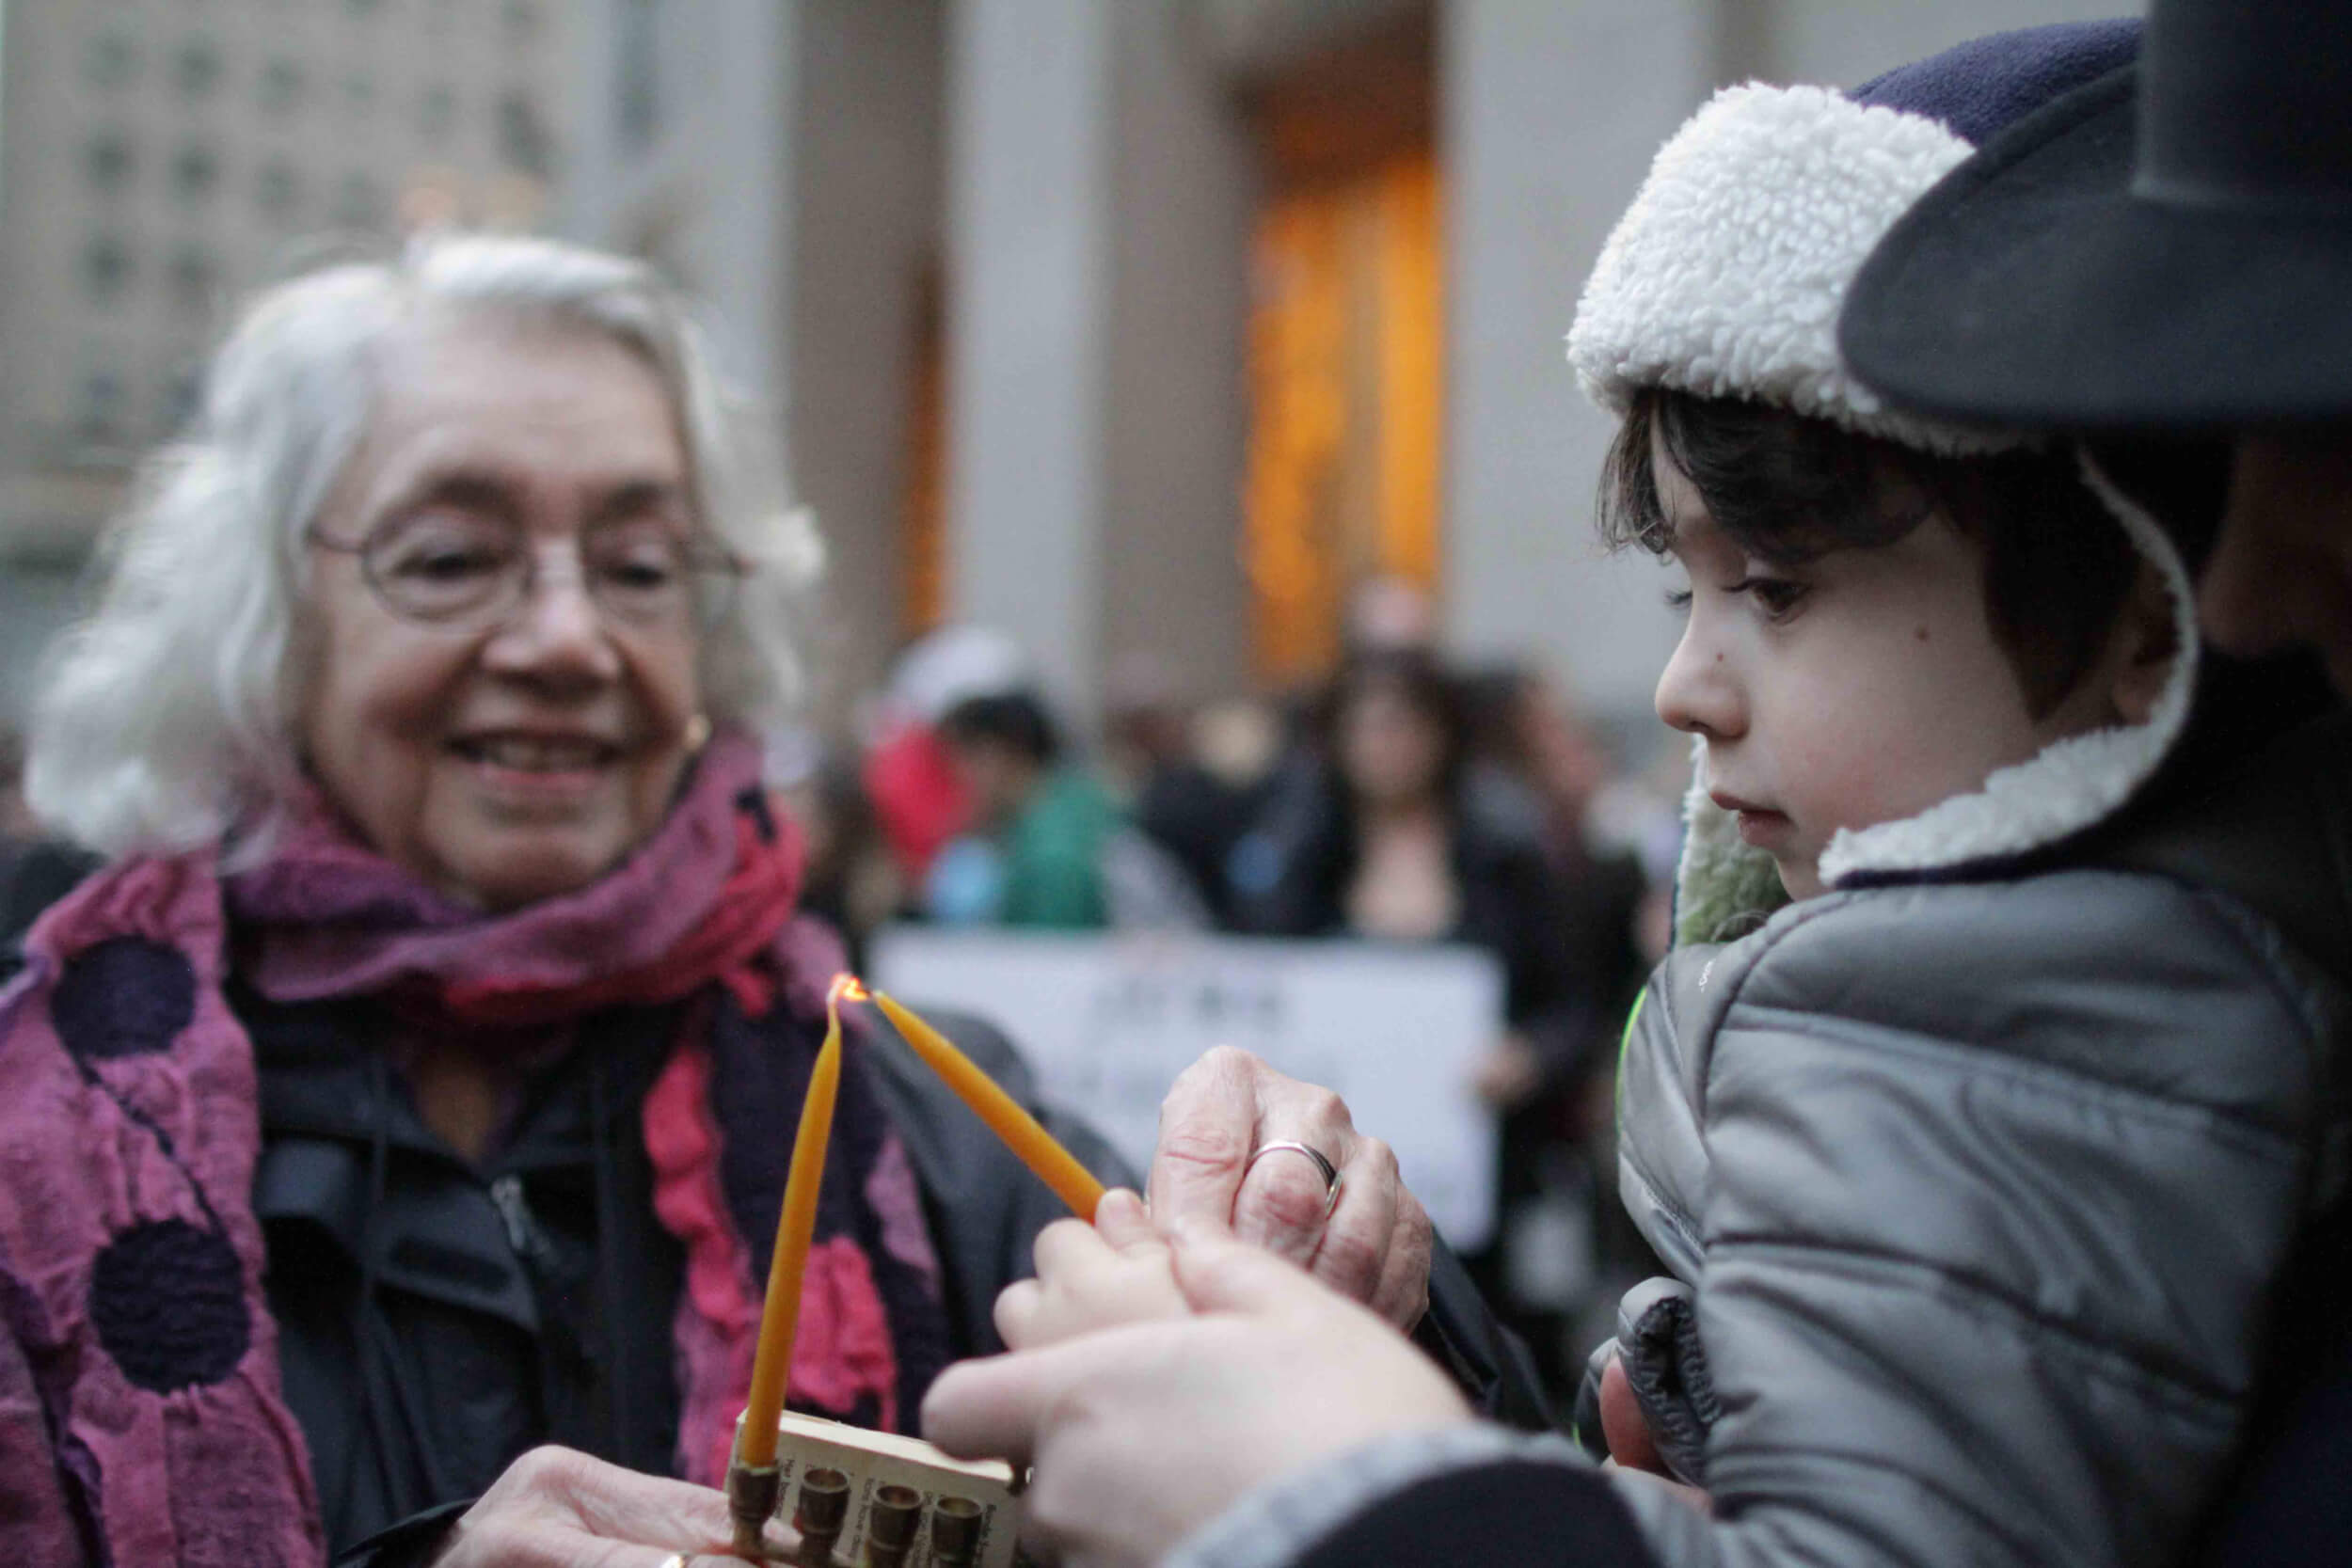 Dorothy Zellner and a young volunteer help light a menorah. (Photo: Jewish Voice for Peace)